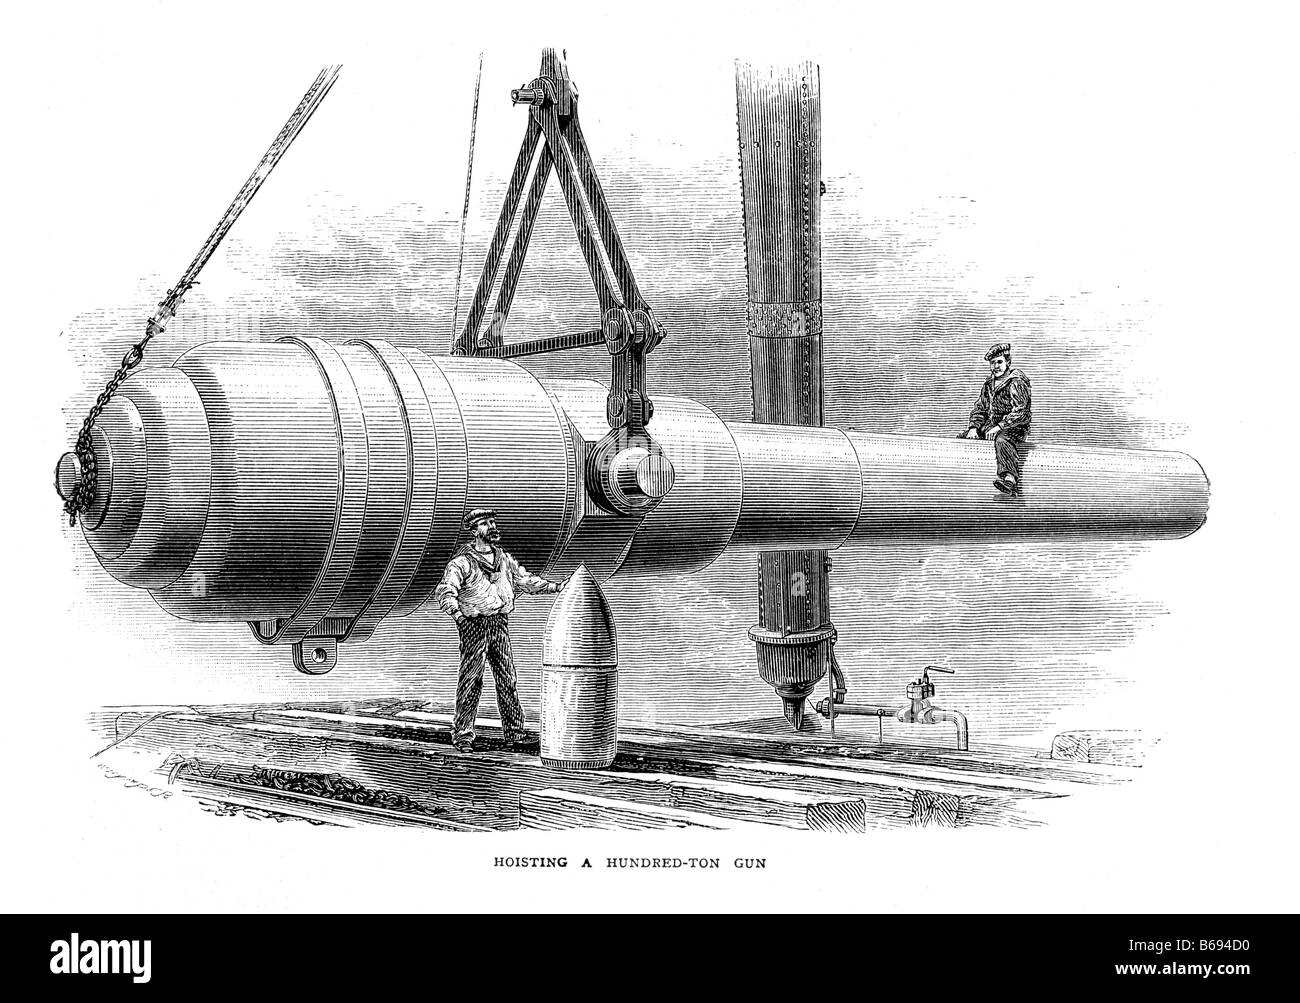 Wg Ltd a one hundred ton mussel loading cannon built by w g armstrong ltd